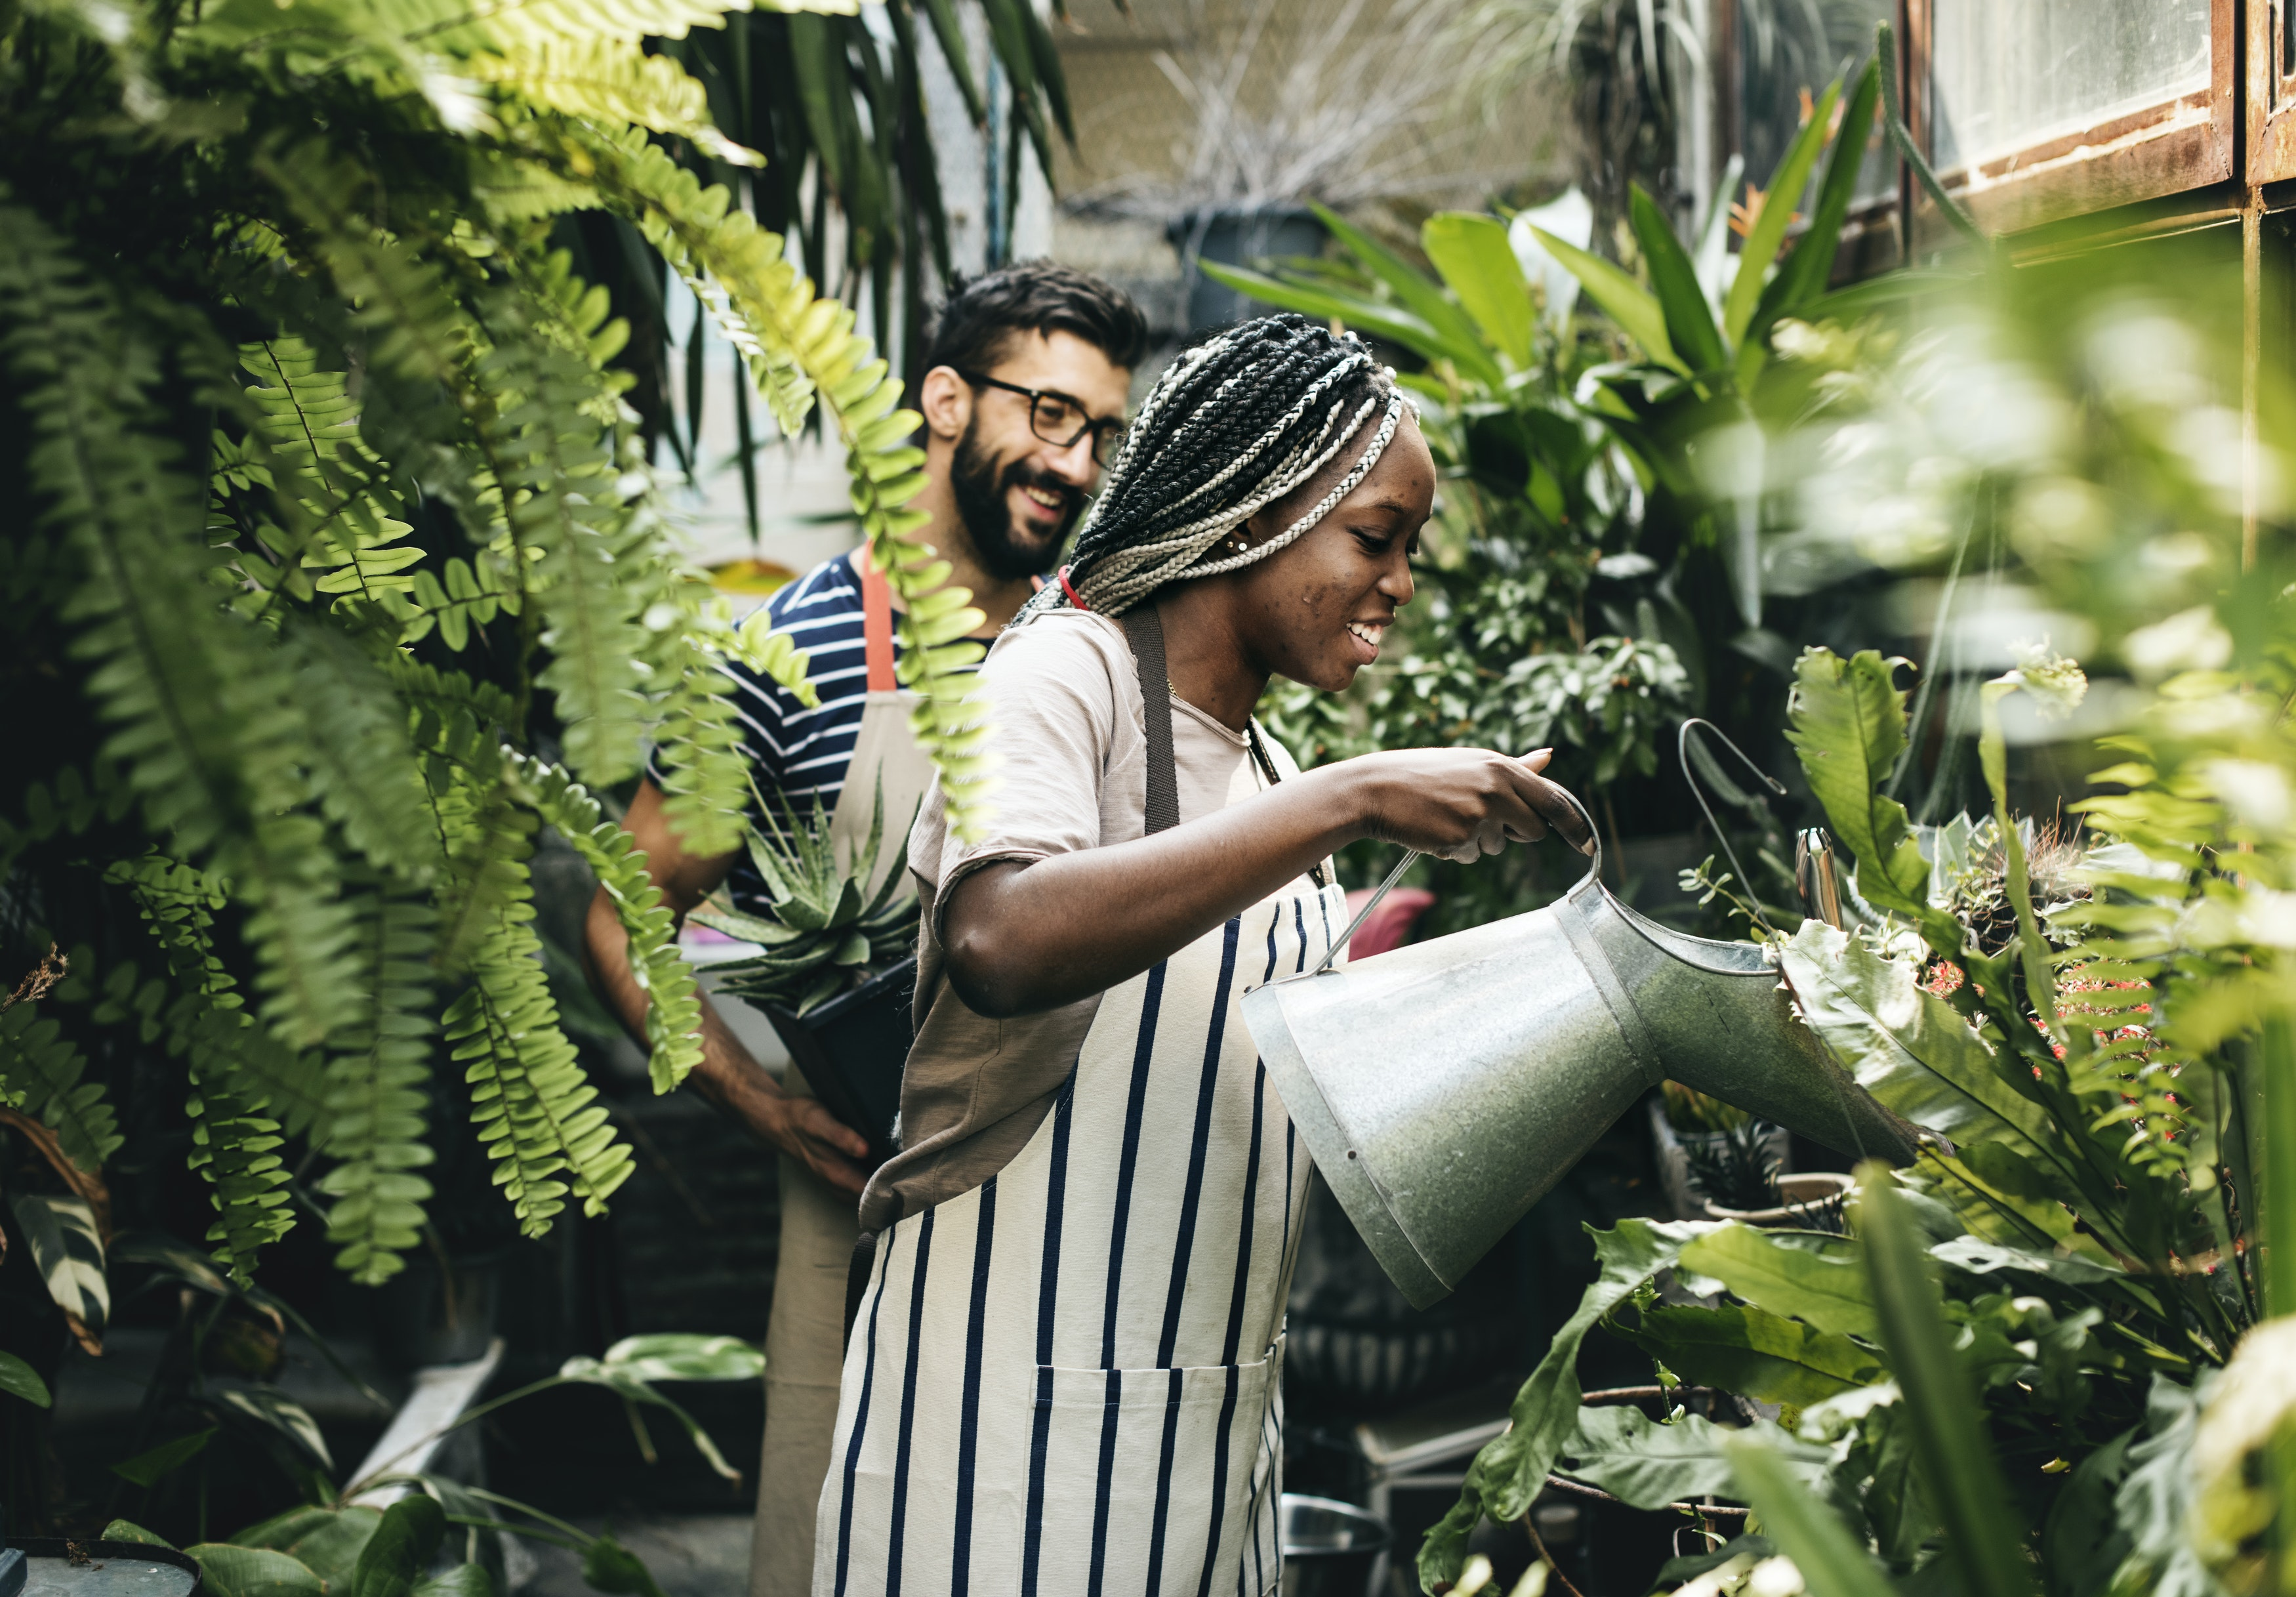 5 ways to give your garden some TLC to attract new tenants